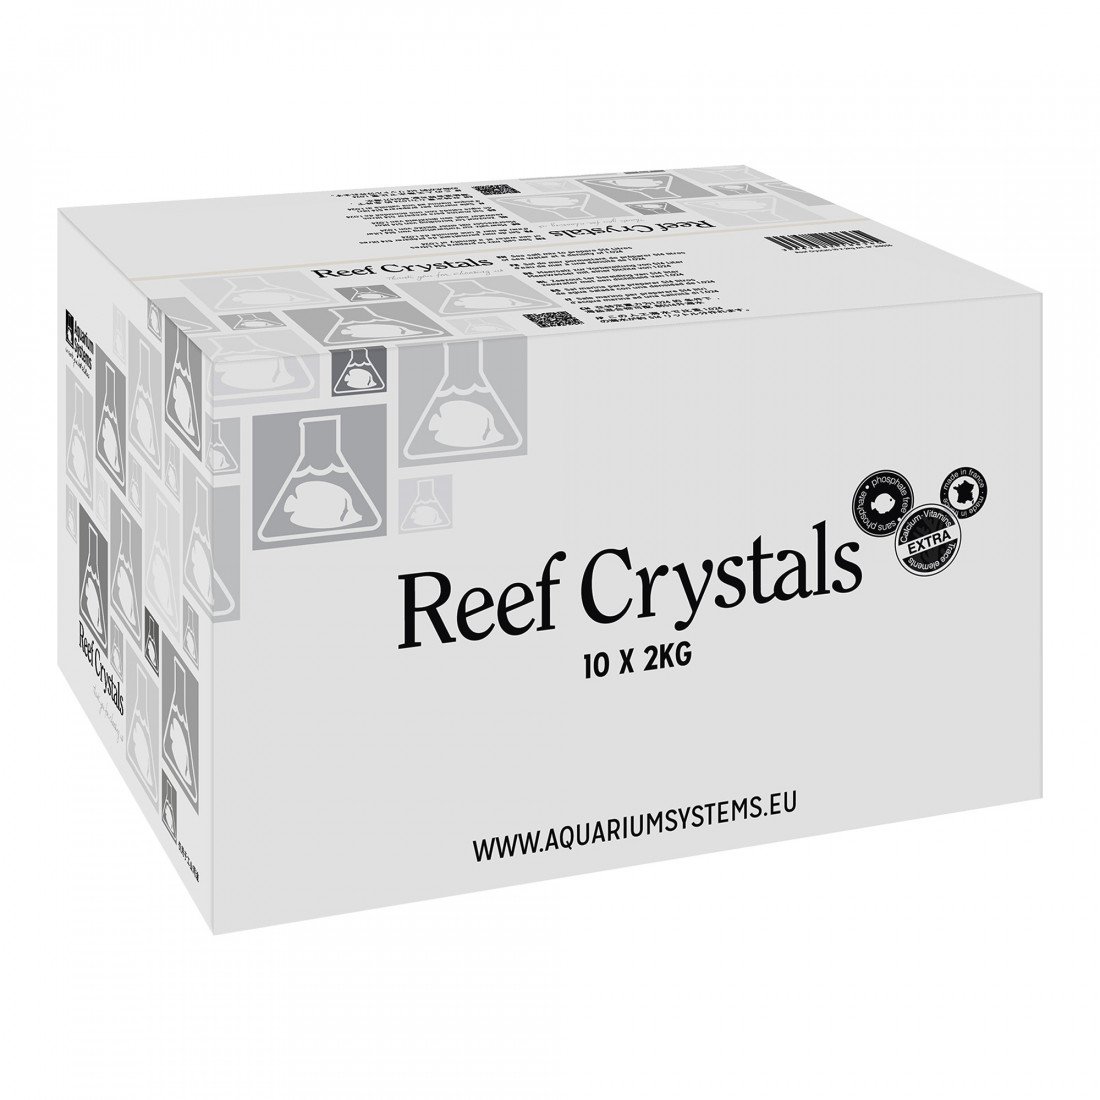 Aquarium systems 20kg Reef Crystals salt box (2kg doses)